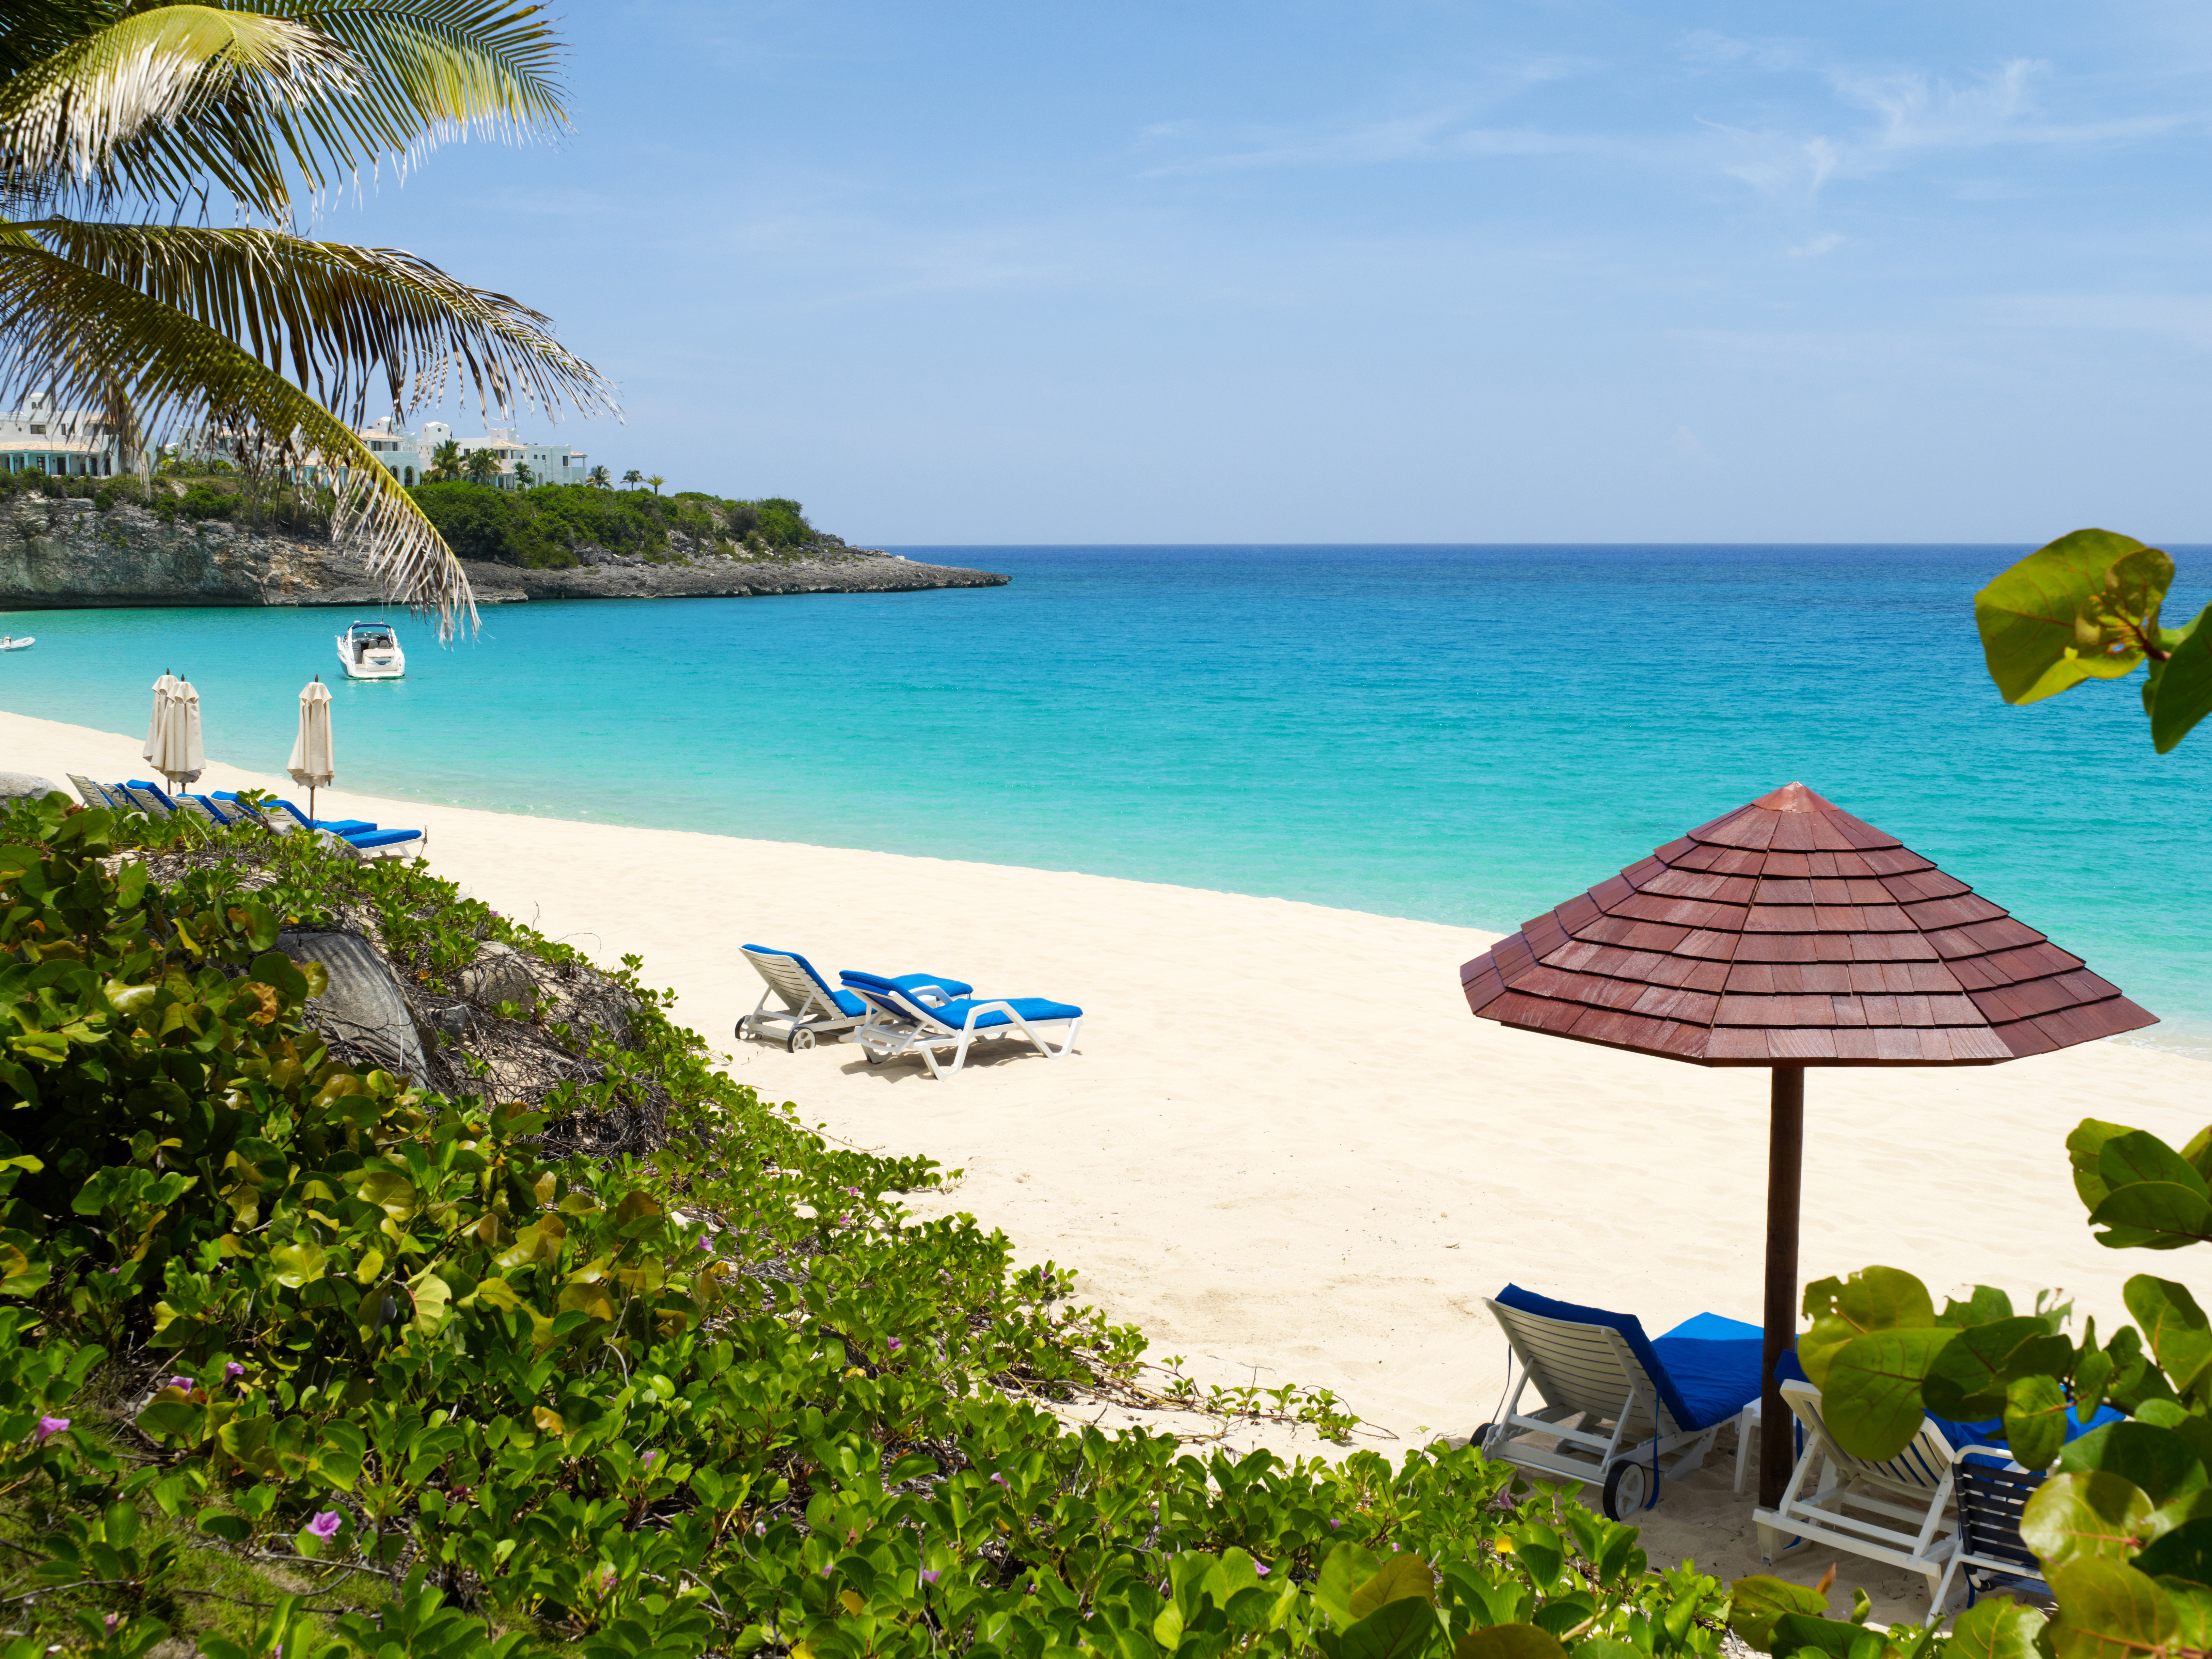 Luxury beach scene with lounge chairs and umbrella over looking island.